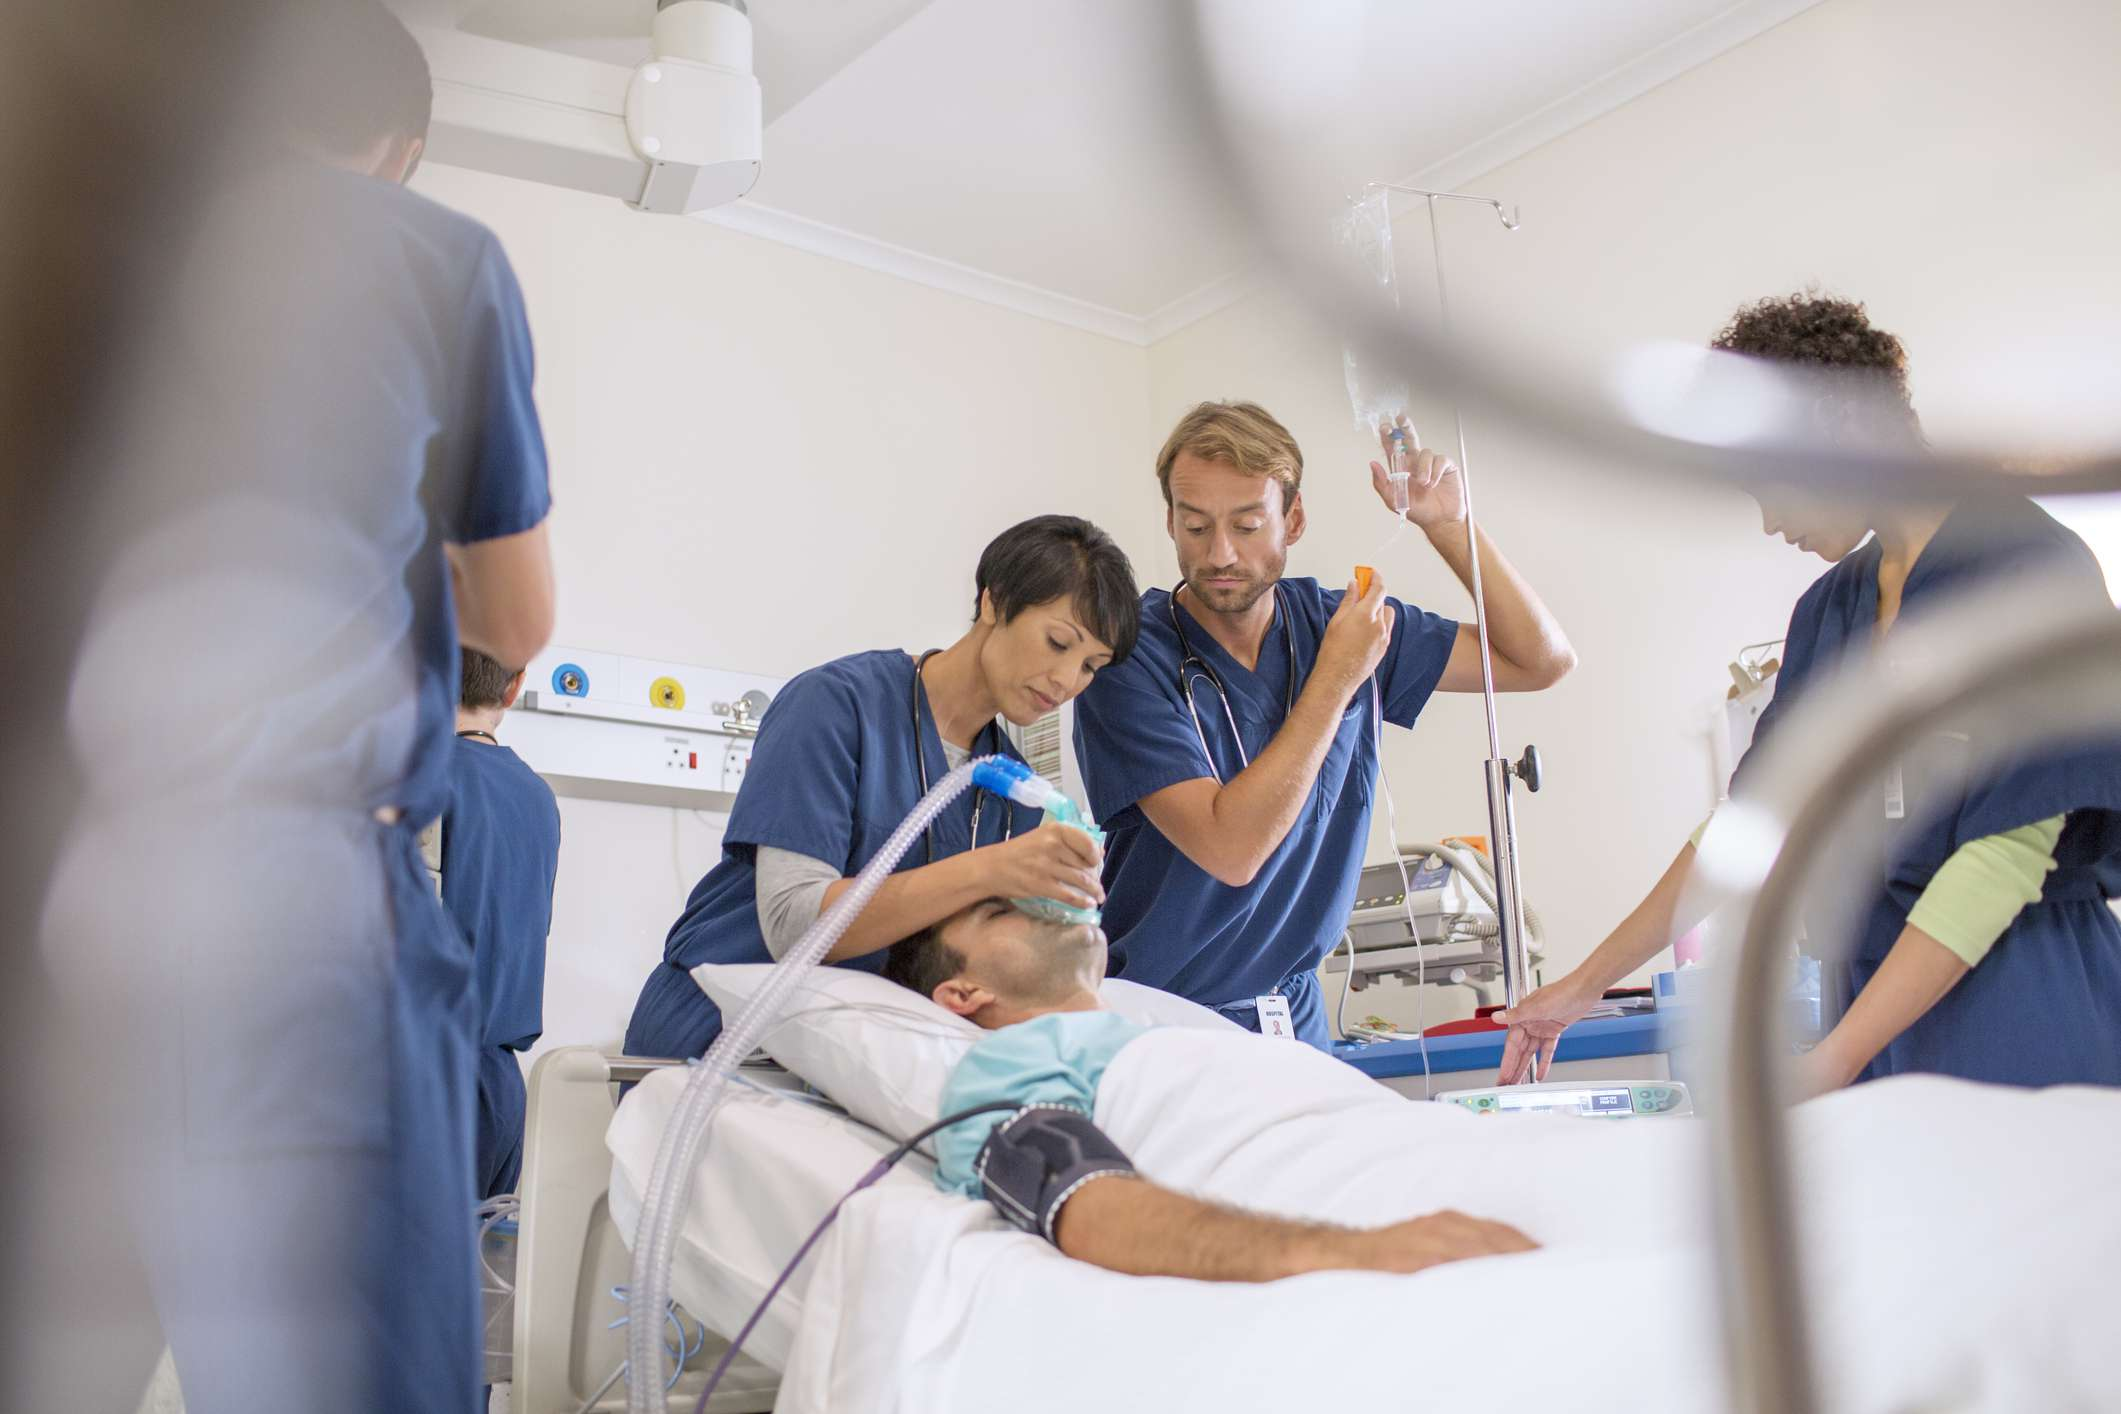 Doctors working on an incapacitated patient